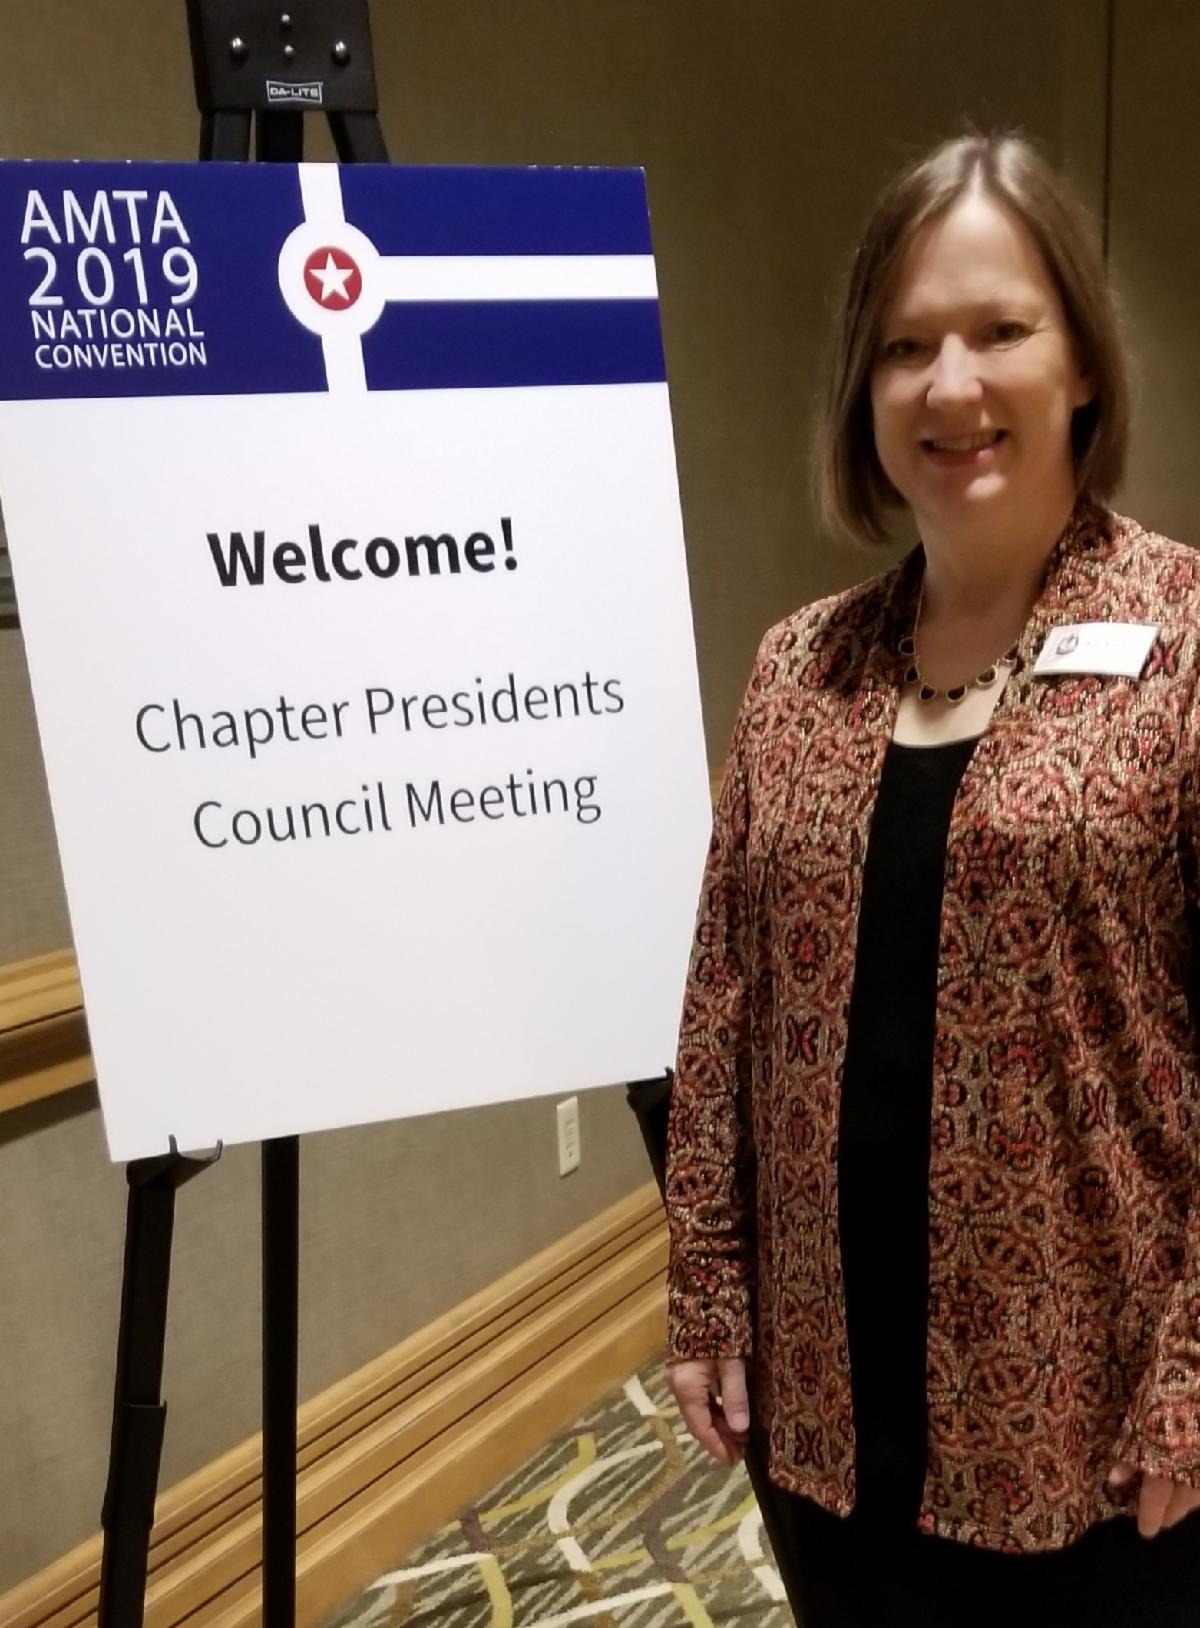 Kimberly Pucka attending the president meeting